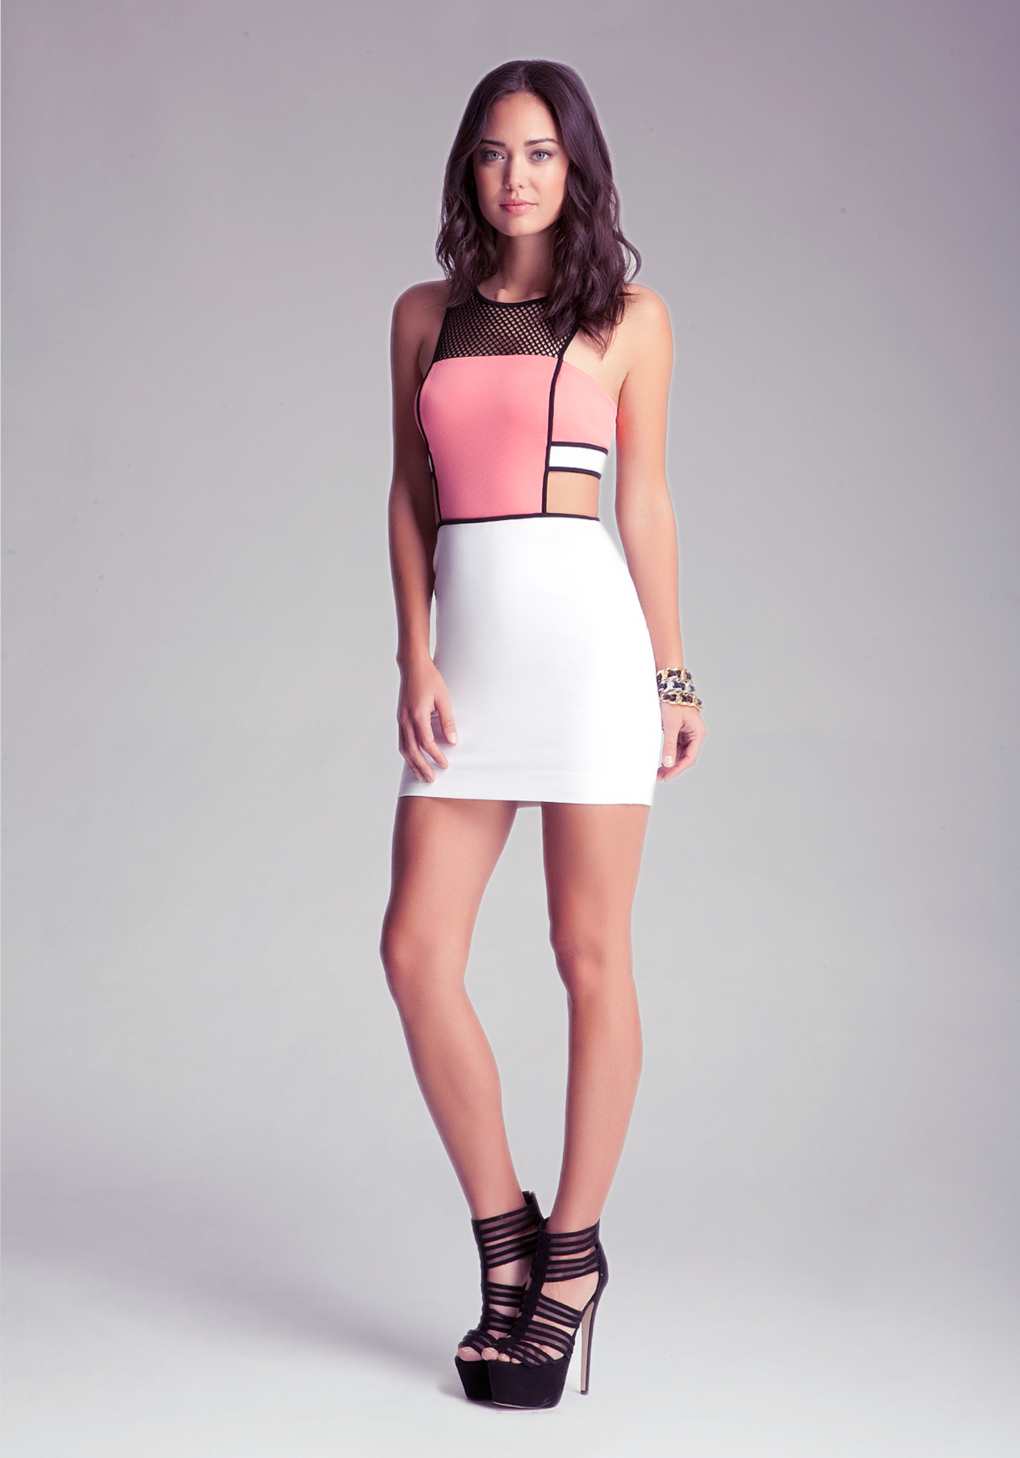 Bebe Sporty Mesh Side Cutout Dress In Coral Red Lyst